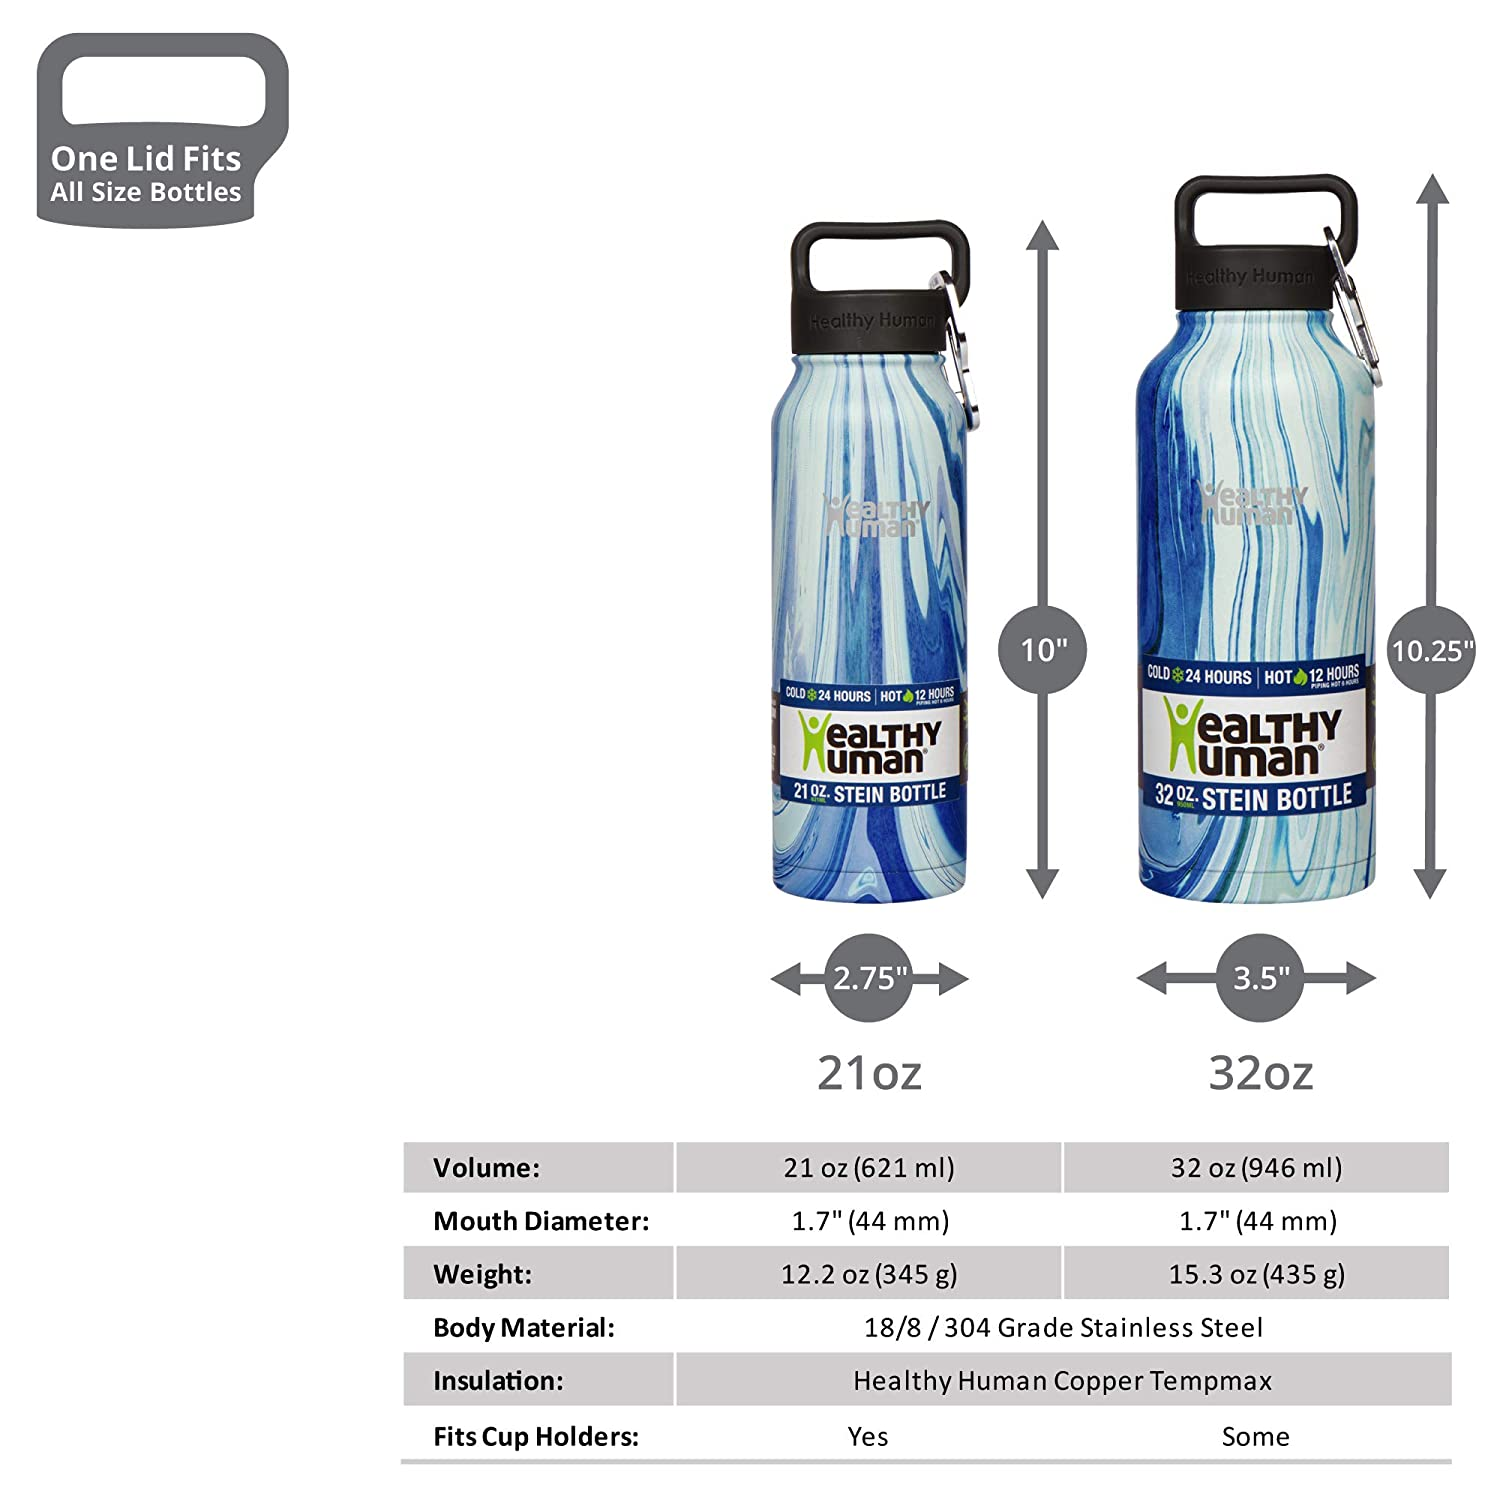 Hot 12 Hours 16 oz 21 oz 40 oz Double Walled Water Bottle 32 oz Keeps Cold 24 Hours Healthy Human Designer Collection Stainless Steel Vacuum Insulated Water Bottle